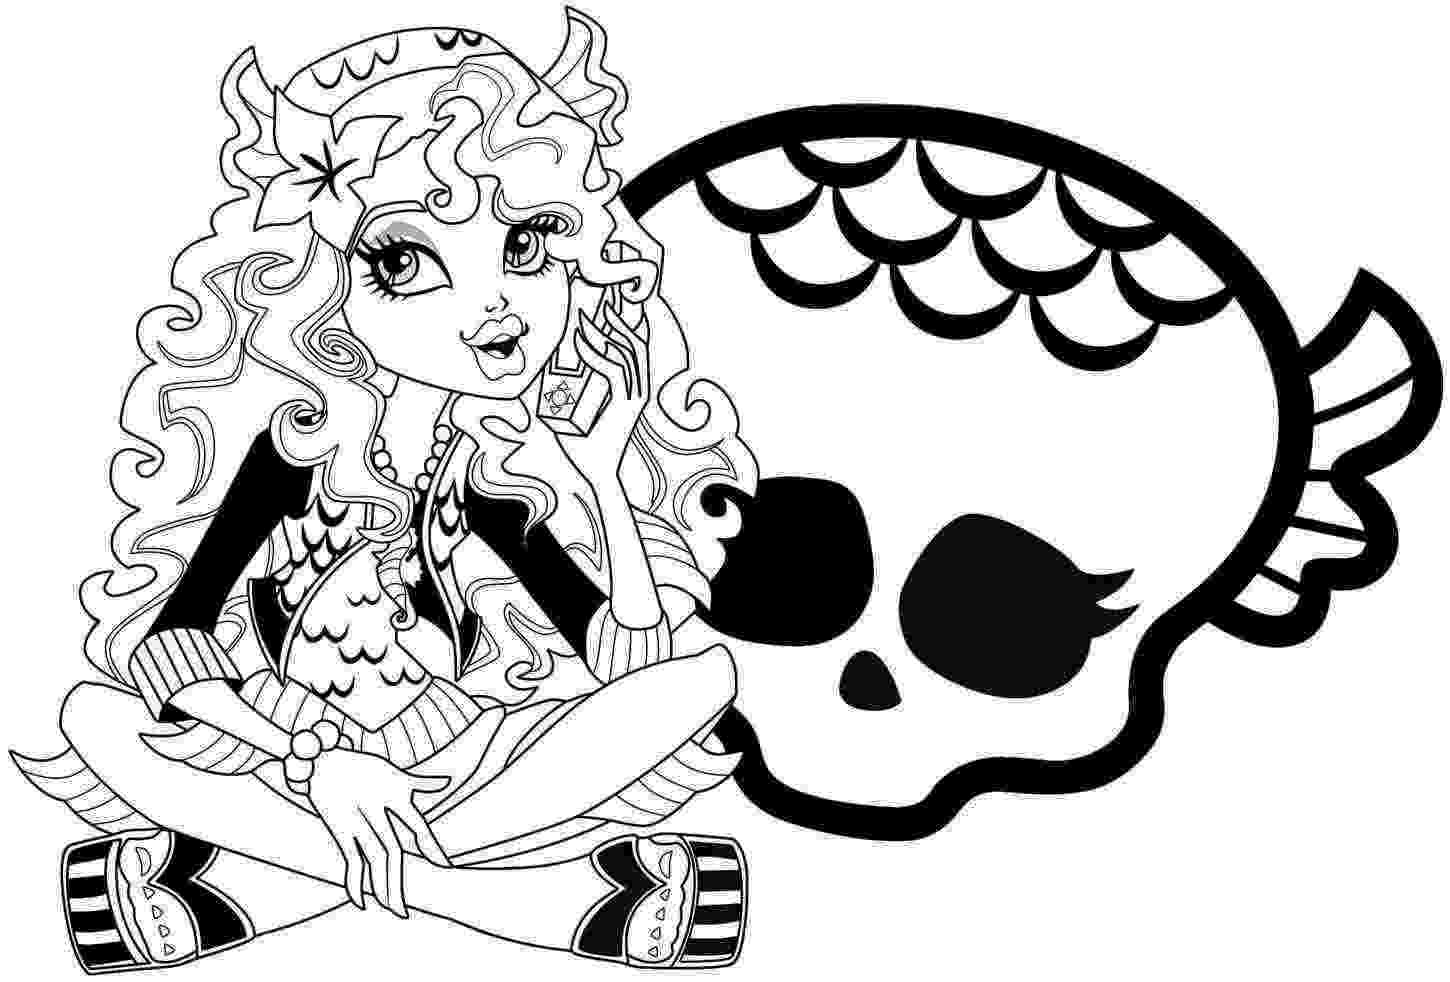 monster high pages to color monster high catty noir coloring page free printable monster high color pages to